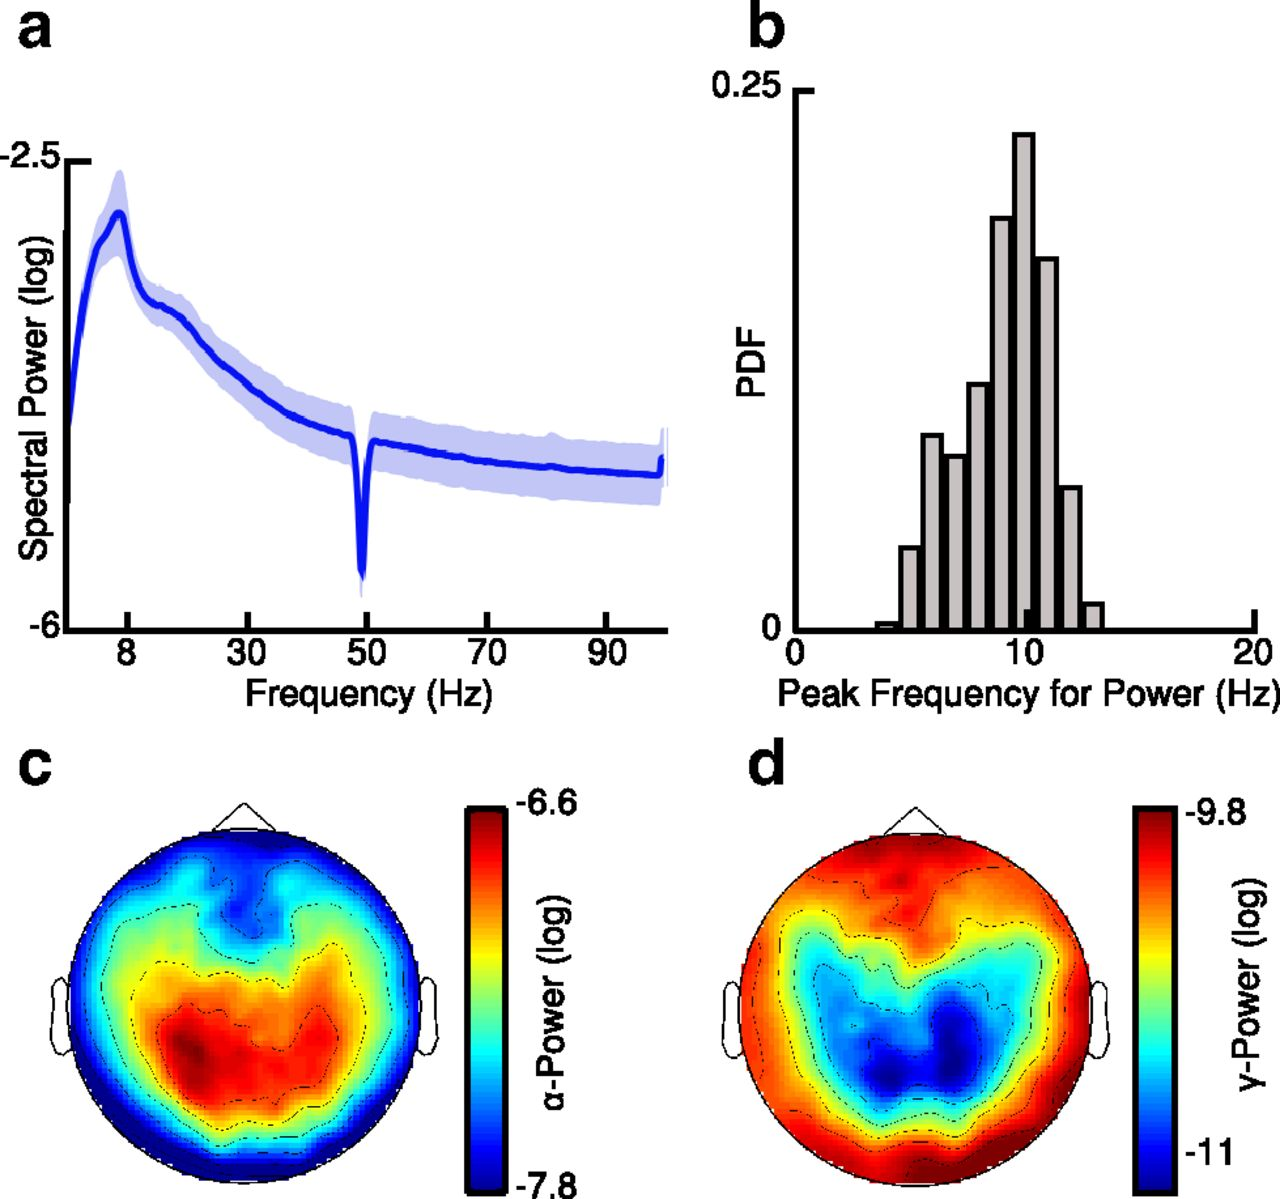 The Phase of Thalamic Alpha Activity Modulates Cortical